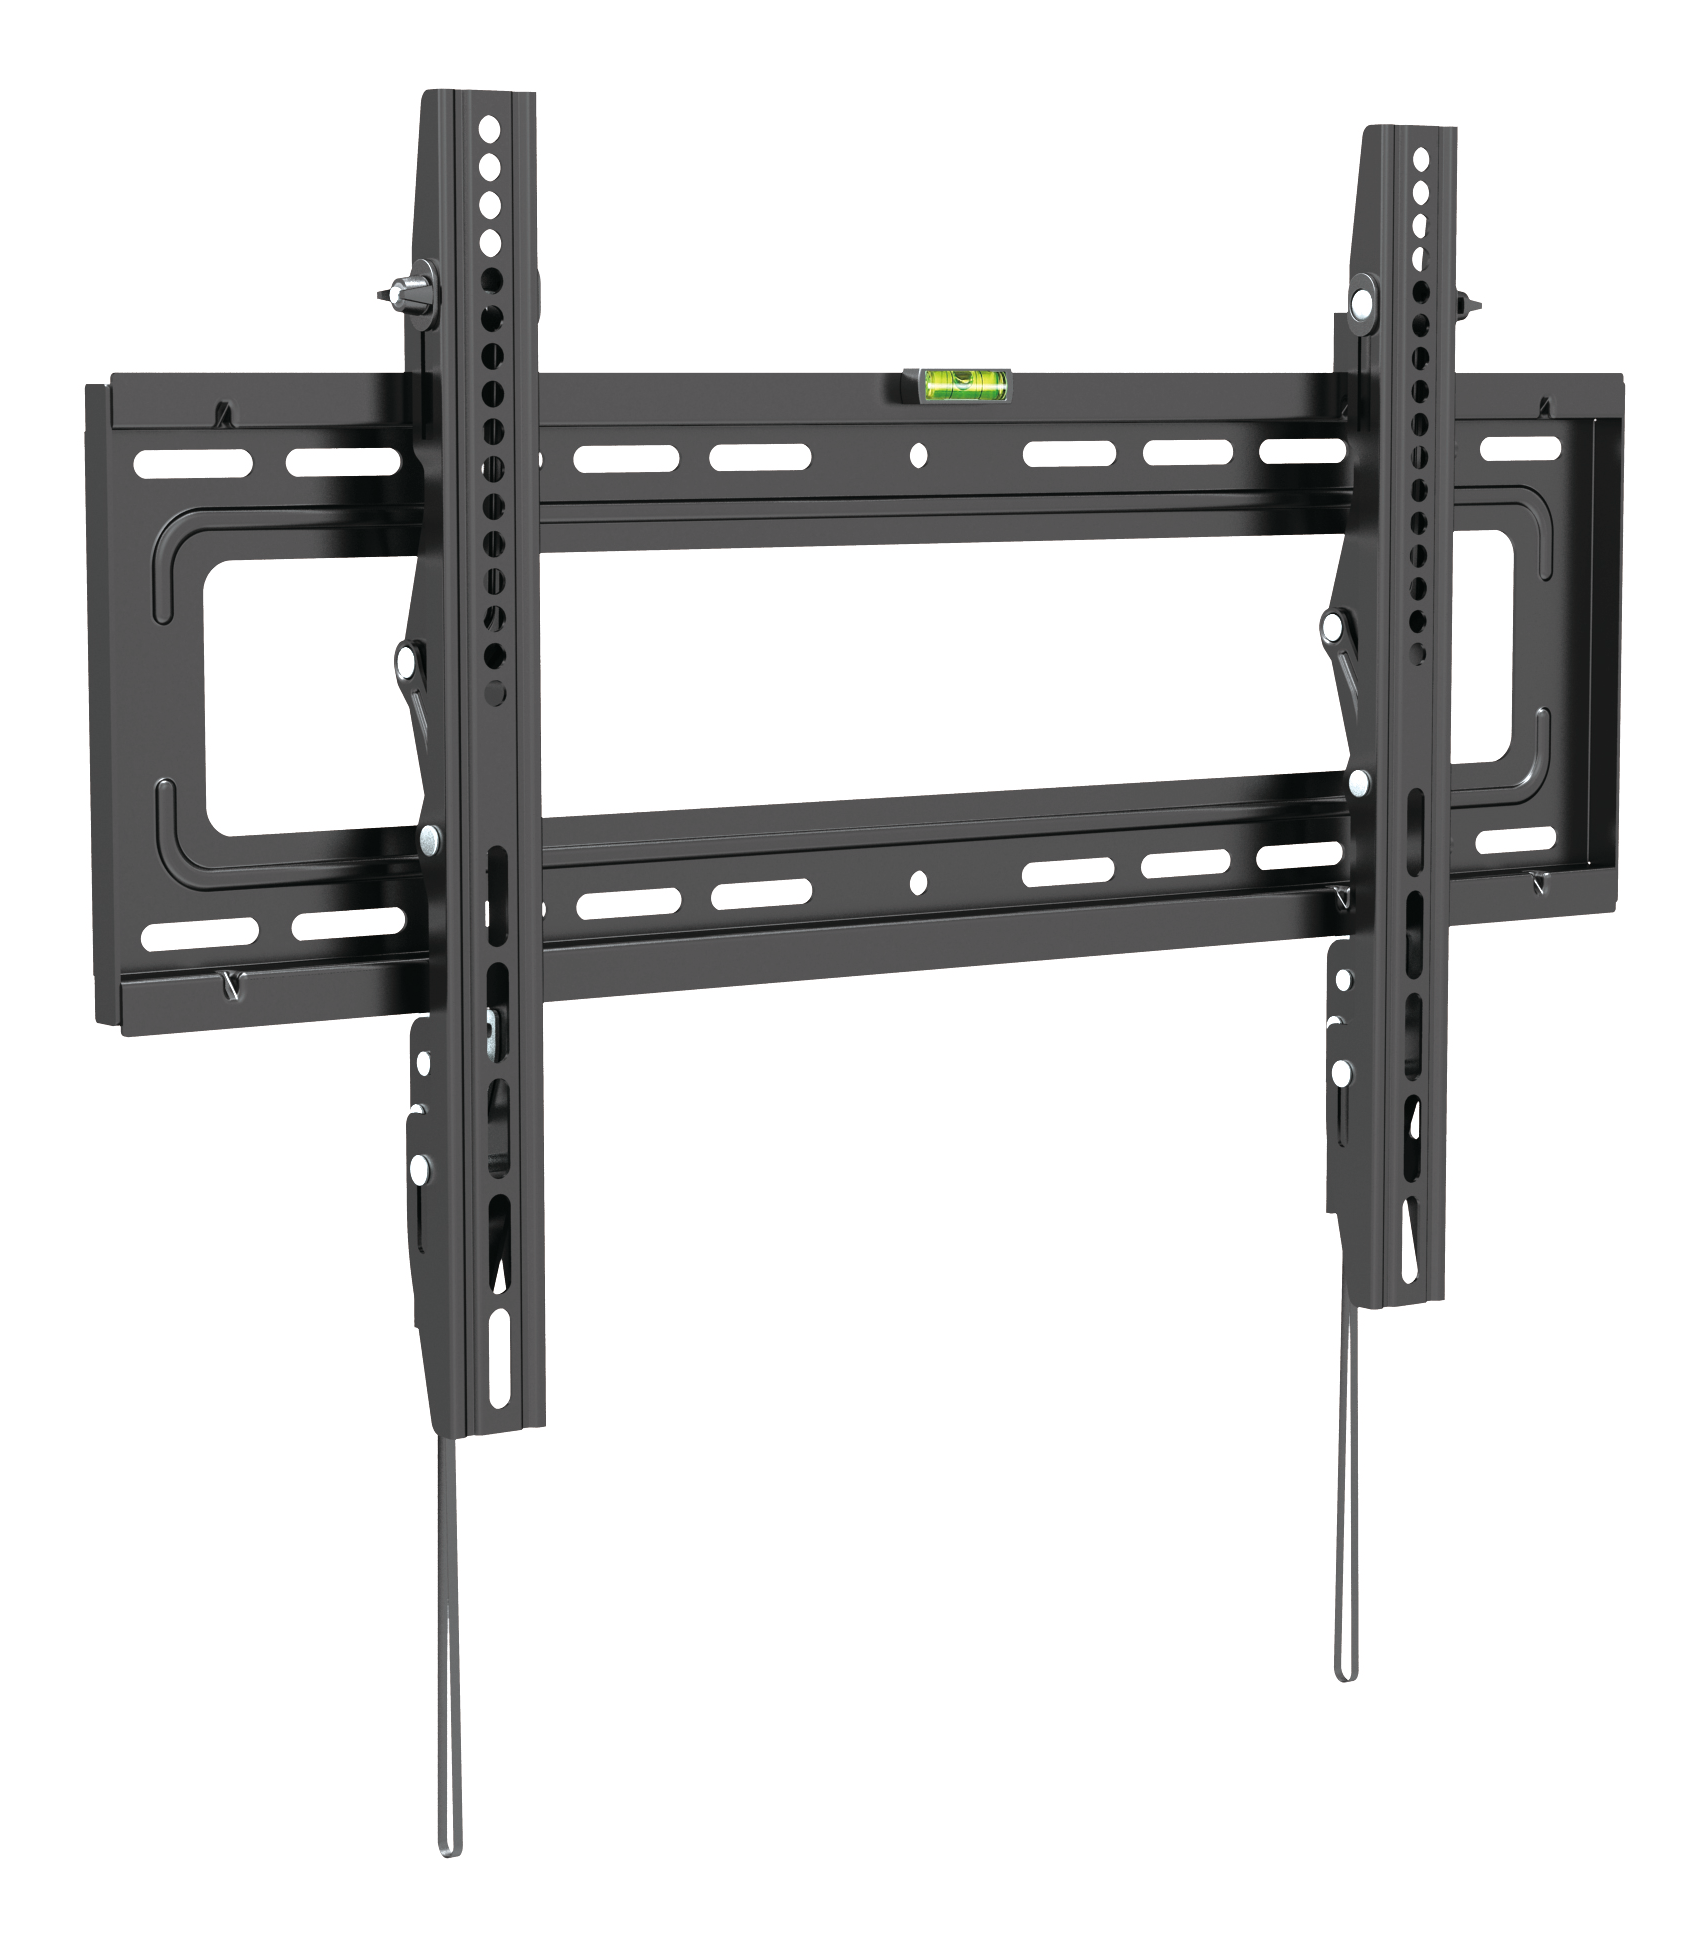 Epzi wall mount for curved and flat screen TV/Monitor, 37